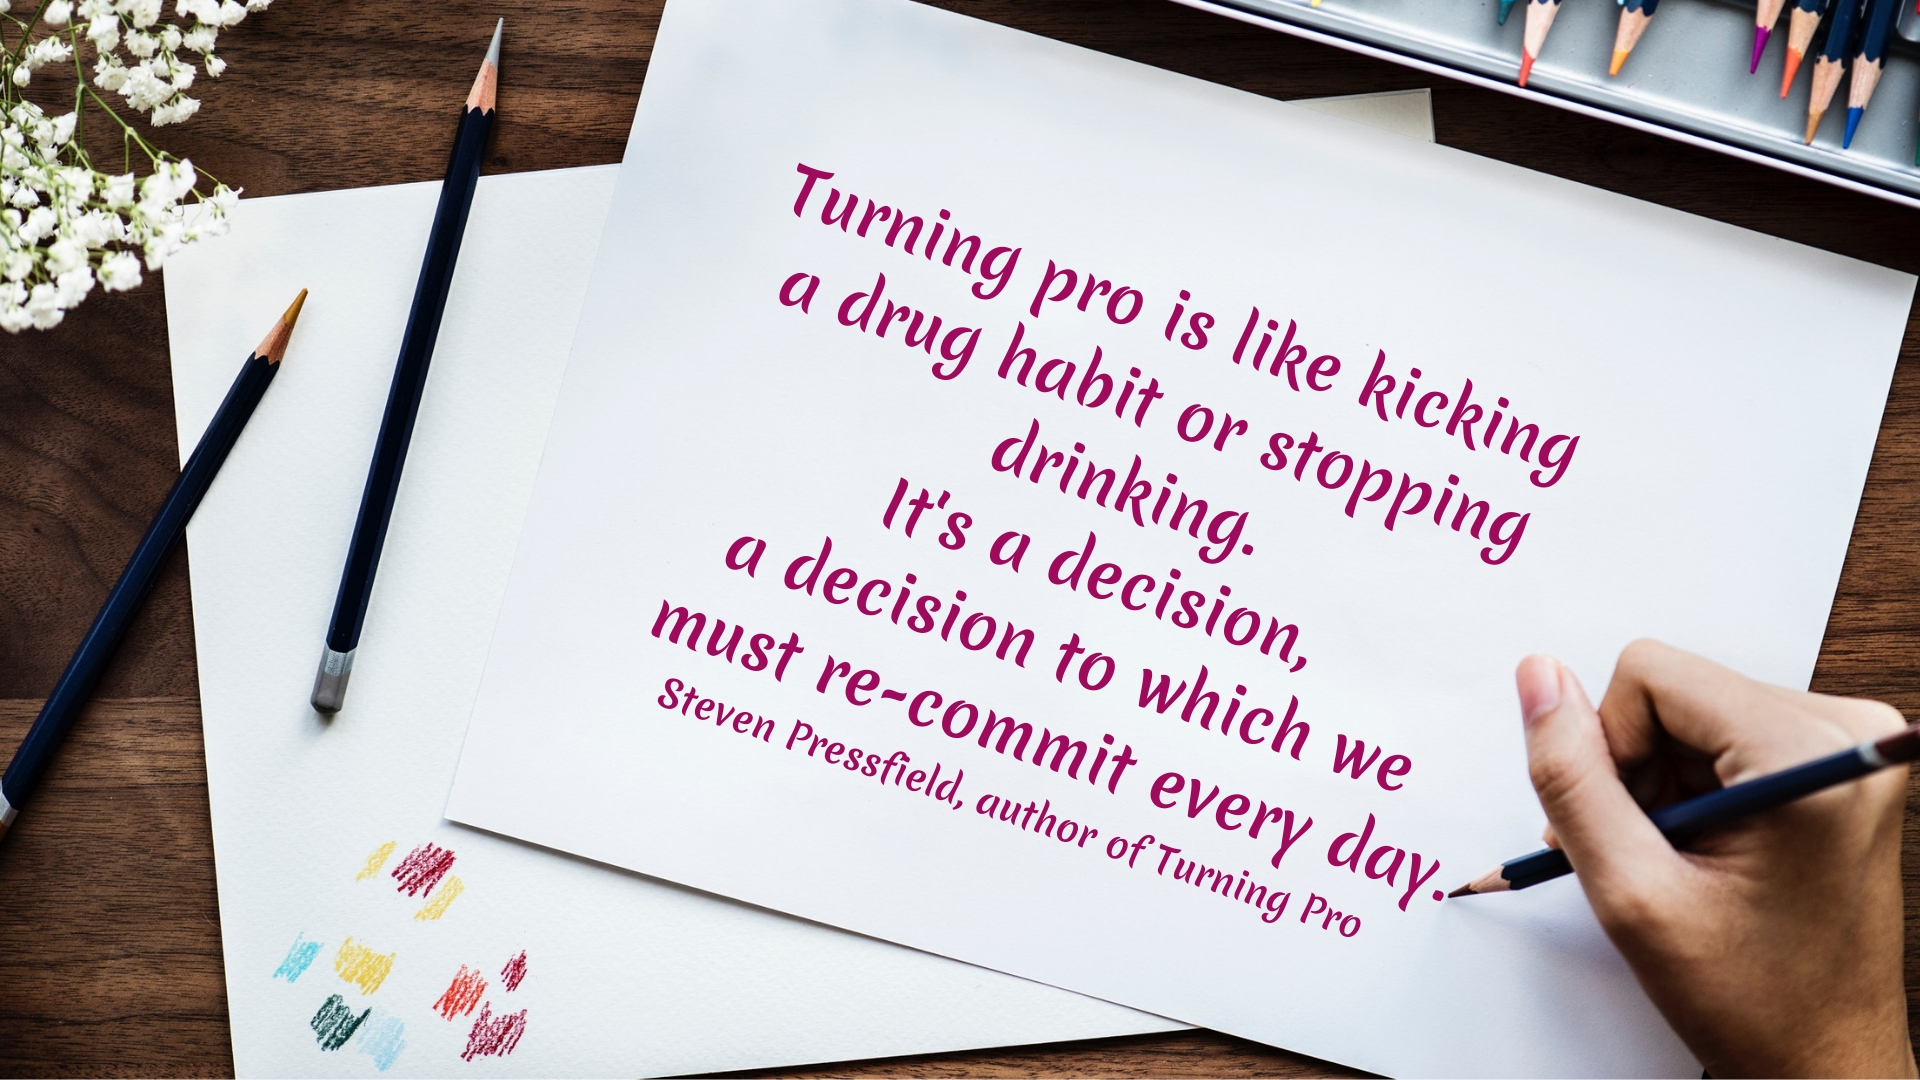 Turning pro is like kicking a drug habit or stopping drinking. It's a decision, a decision to which we must re-commit every day ~Steven Pressfield #Tips #Planner #iCreateDaily #Quotes #Cool #Beauty #Motivation #Design #ThingsToDo #Printables #Awesome #Photography #Best #Unique #Journal #Inspiration #Challenge #Skincare #Aesthetic #MorningRoutine #Ideas #Portfolio